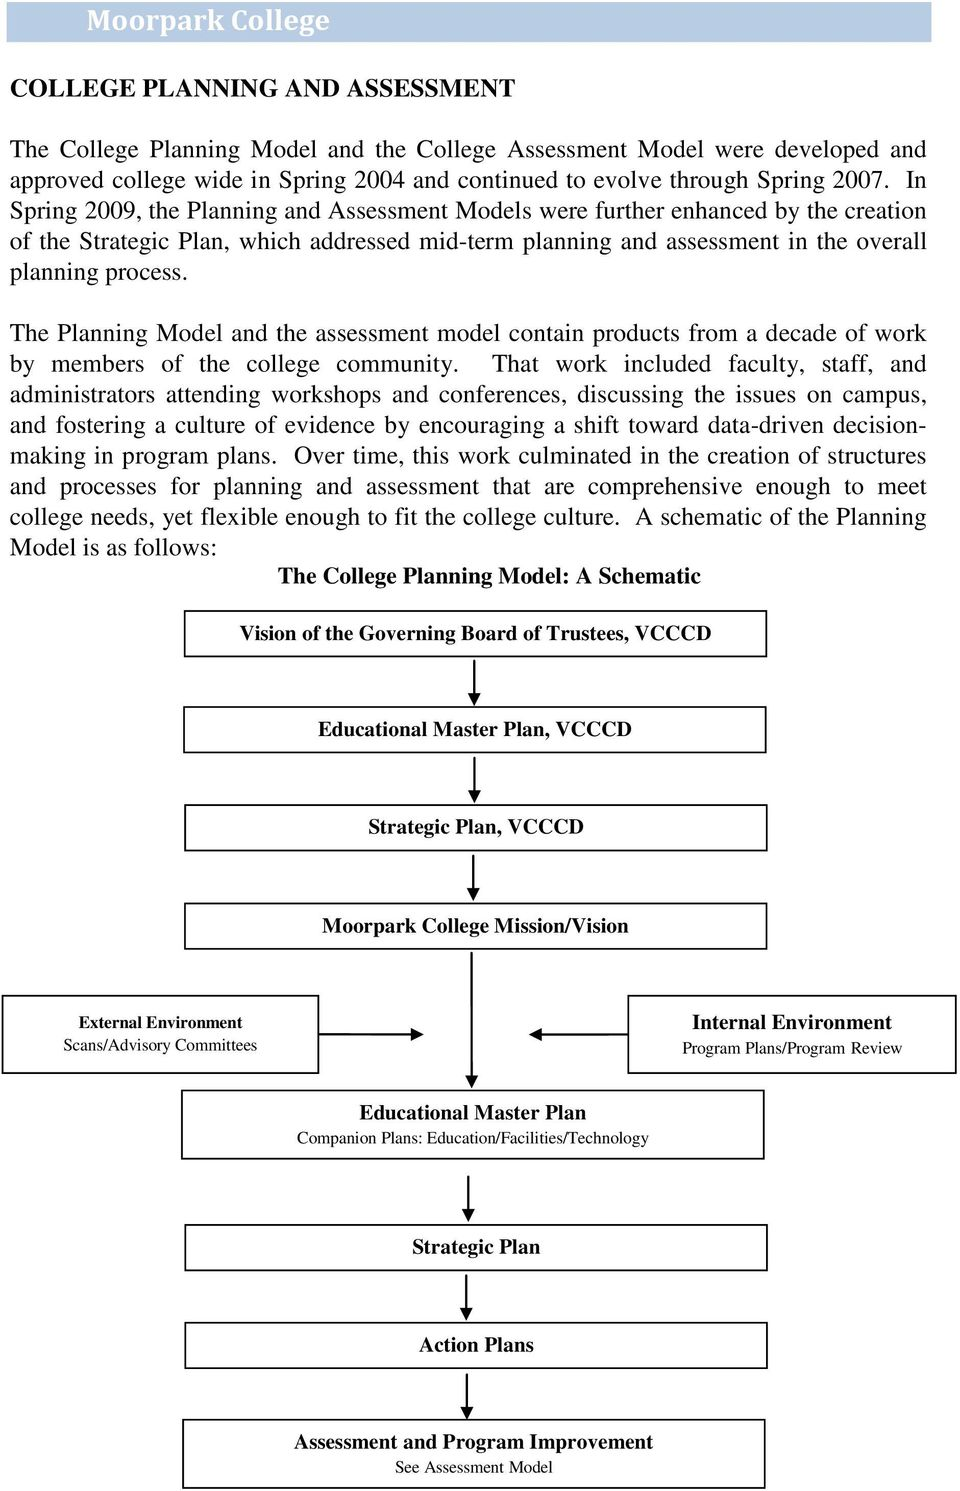 In Spring 2009, the Planning and Assessment Models were further enhanced by the creation of the Strategic Plan, which addressed mid-term planning and assessment in the overall planning process.